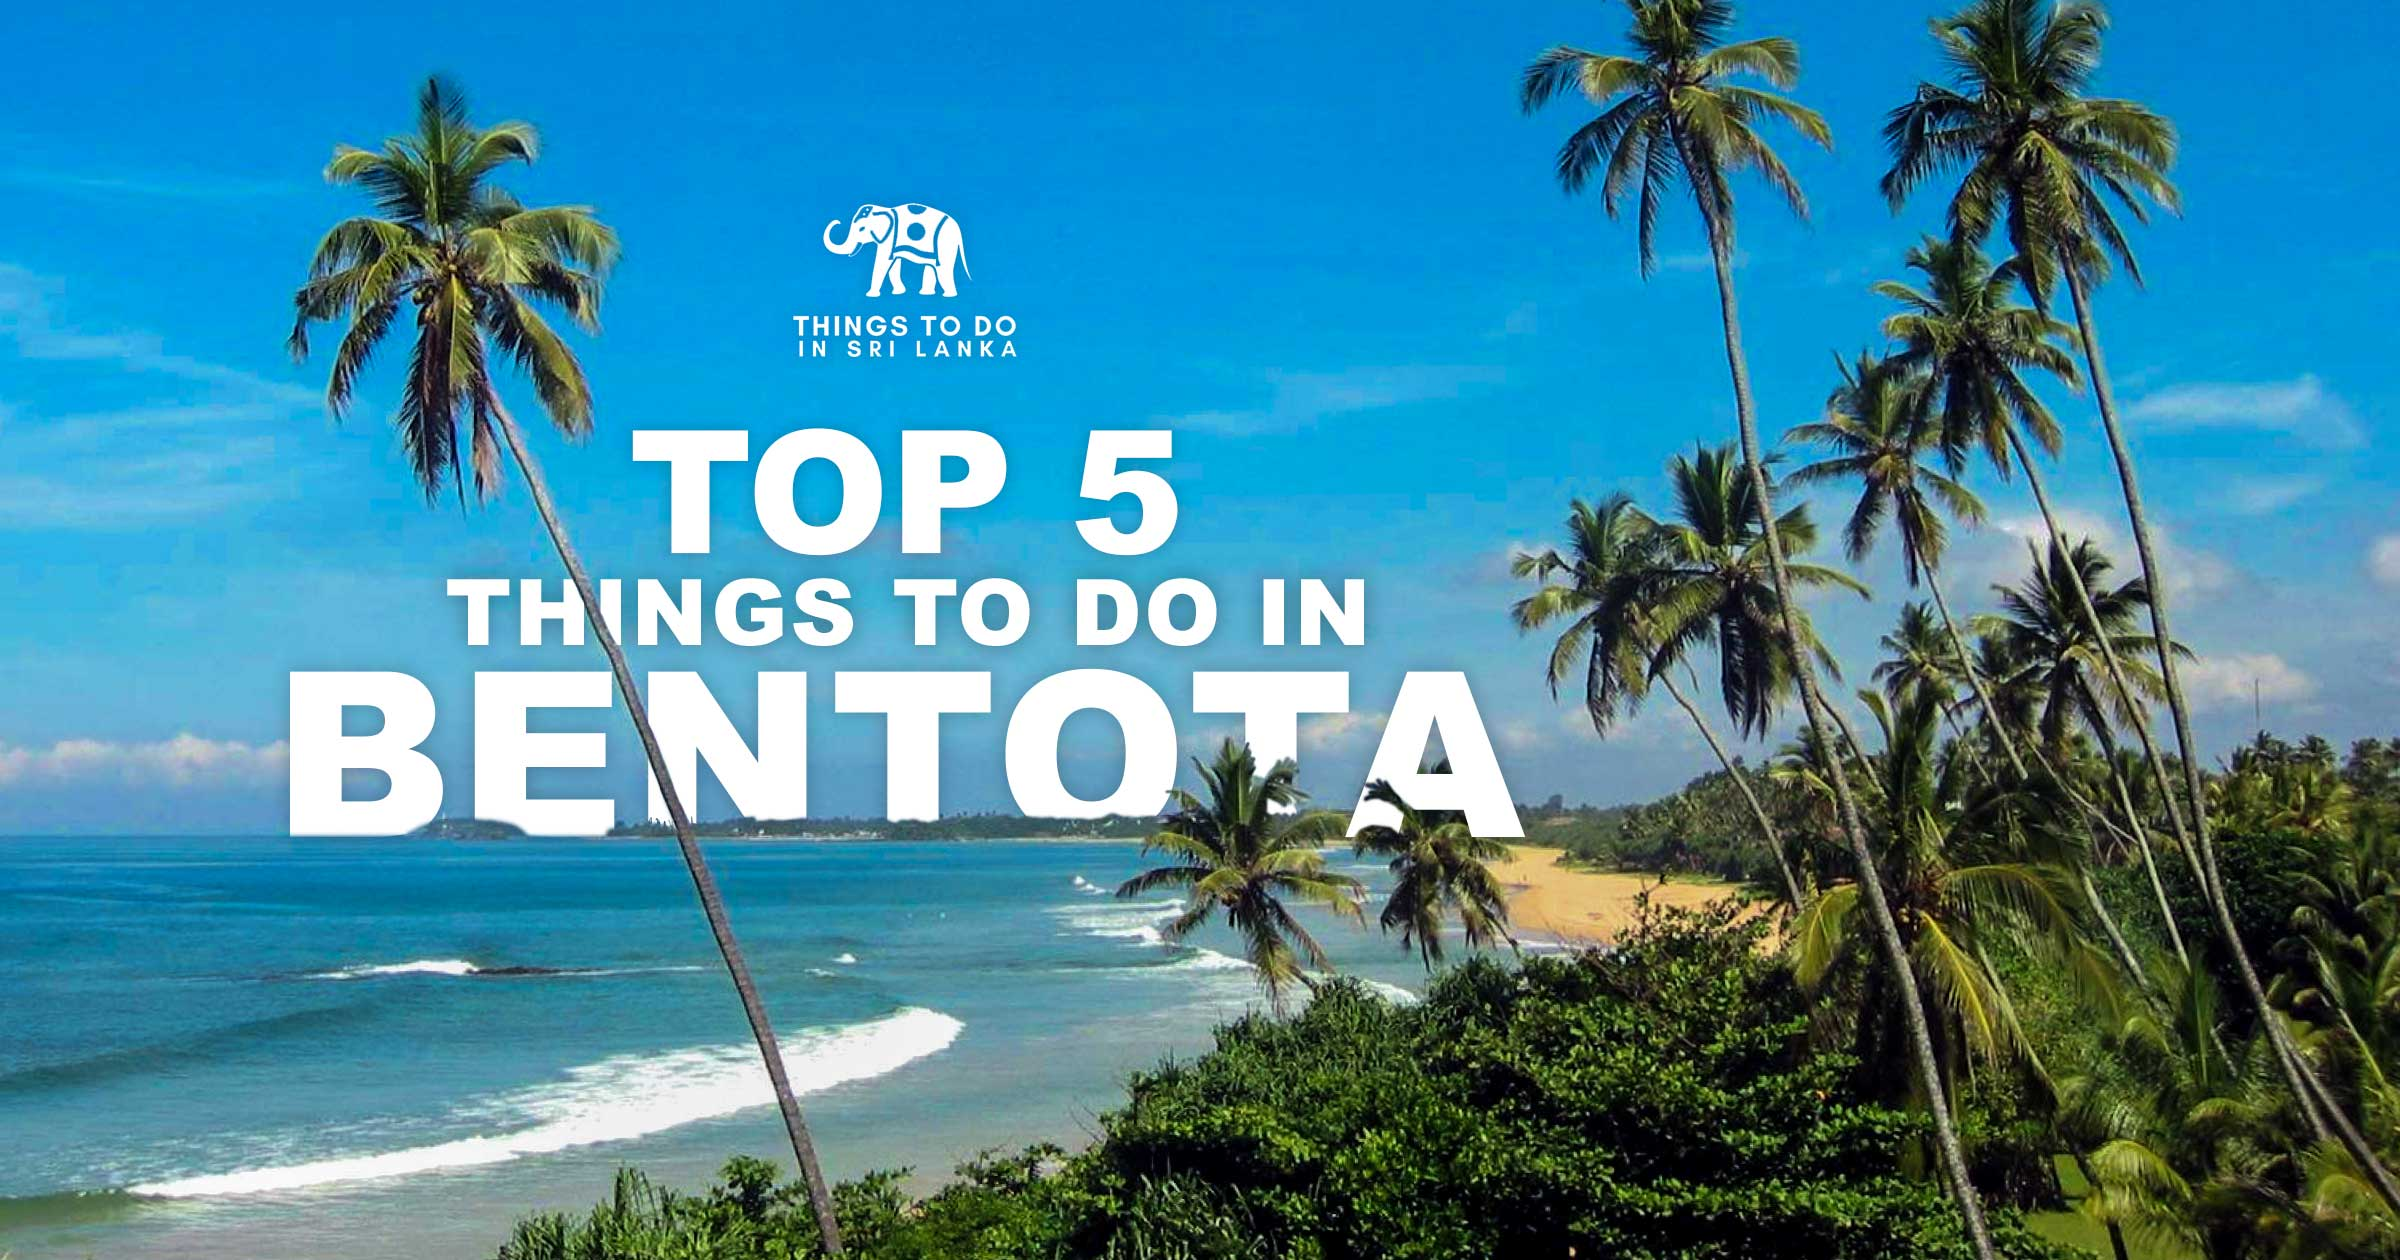 Top 5 things to do in Bentota